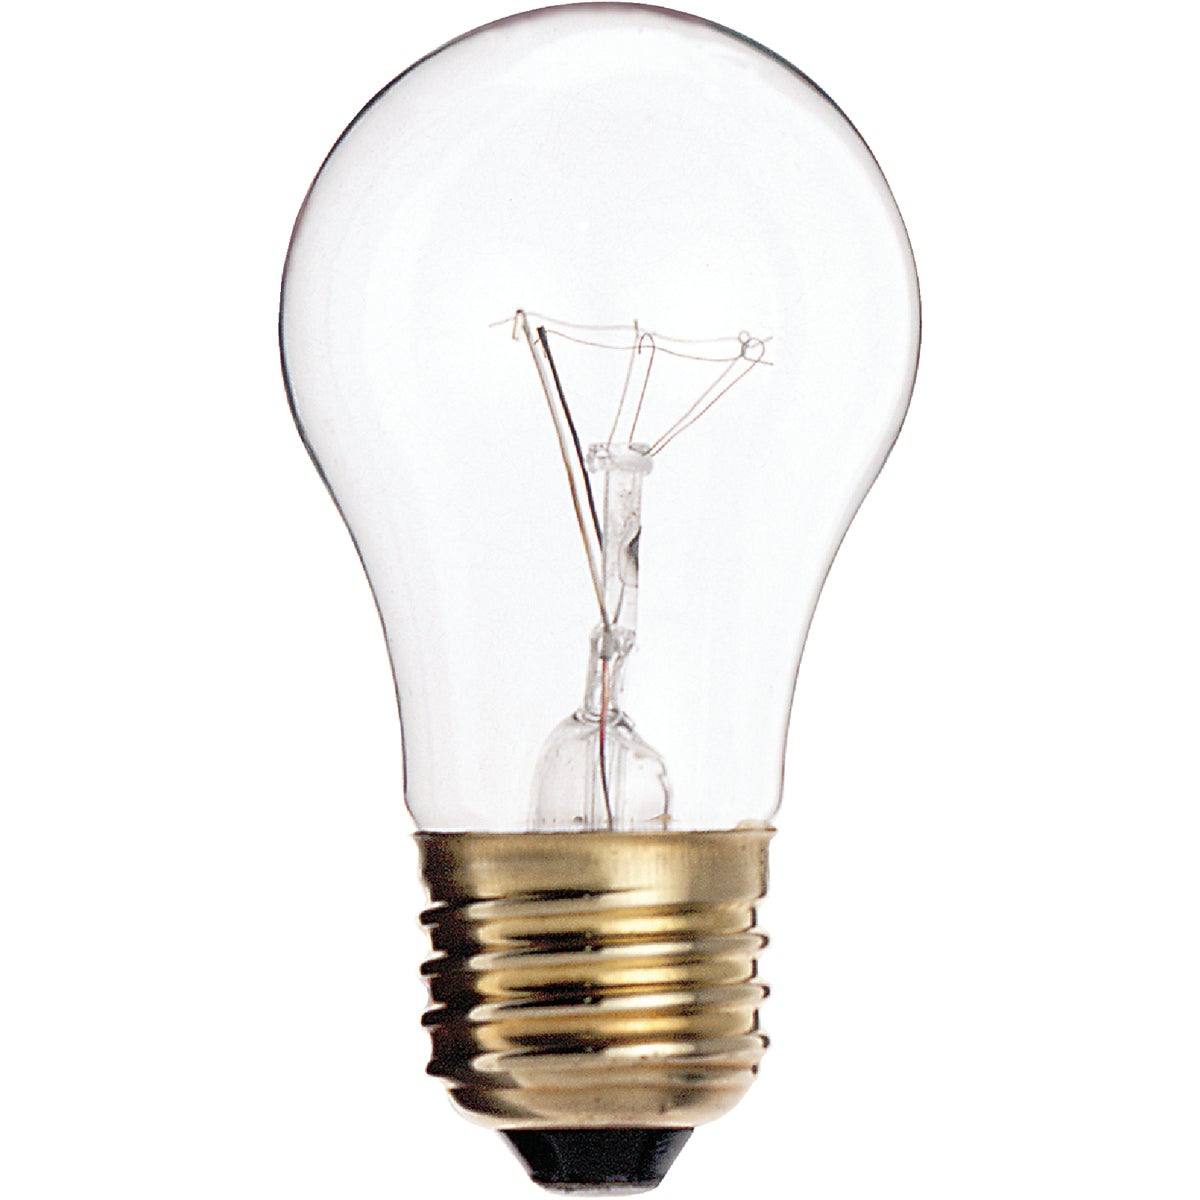 40W CLR APPLIANCE BULB - 15206 40A15 by G E Lighting